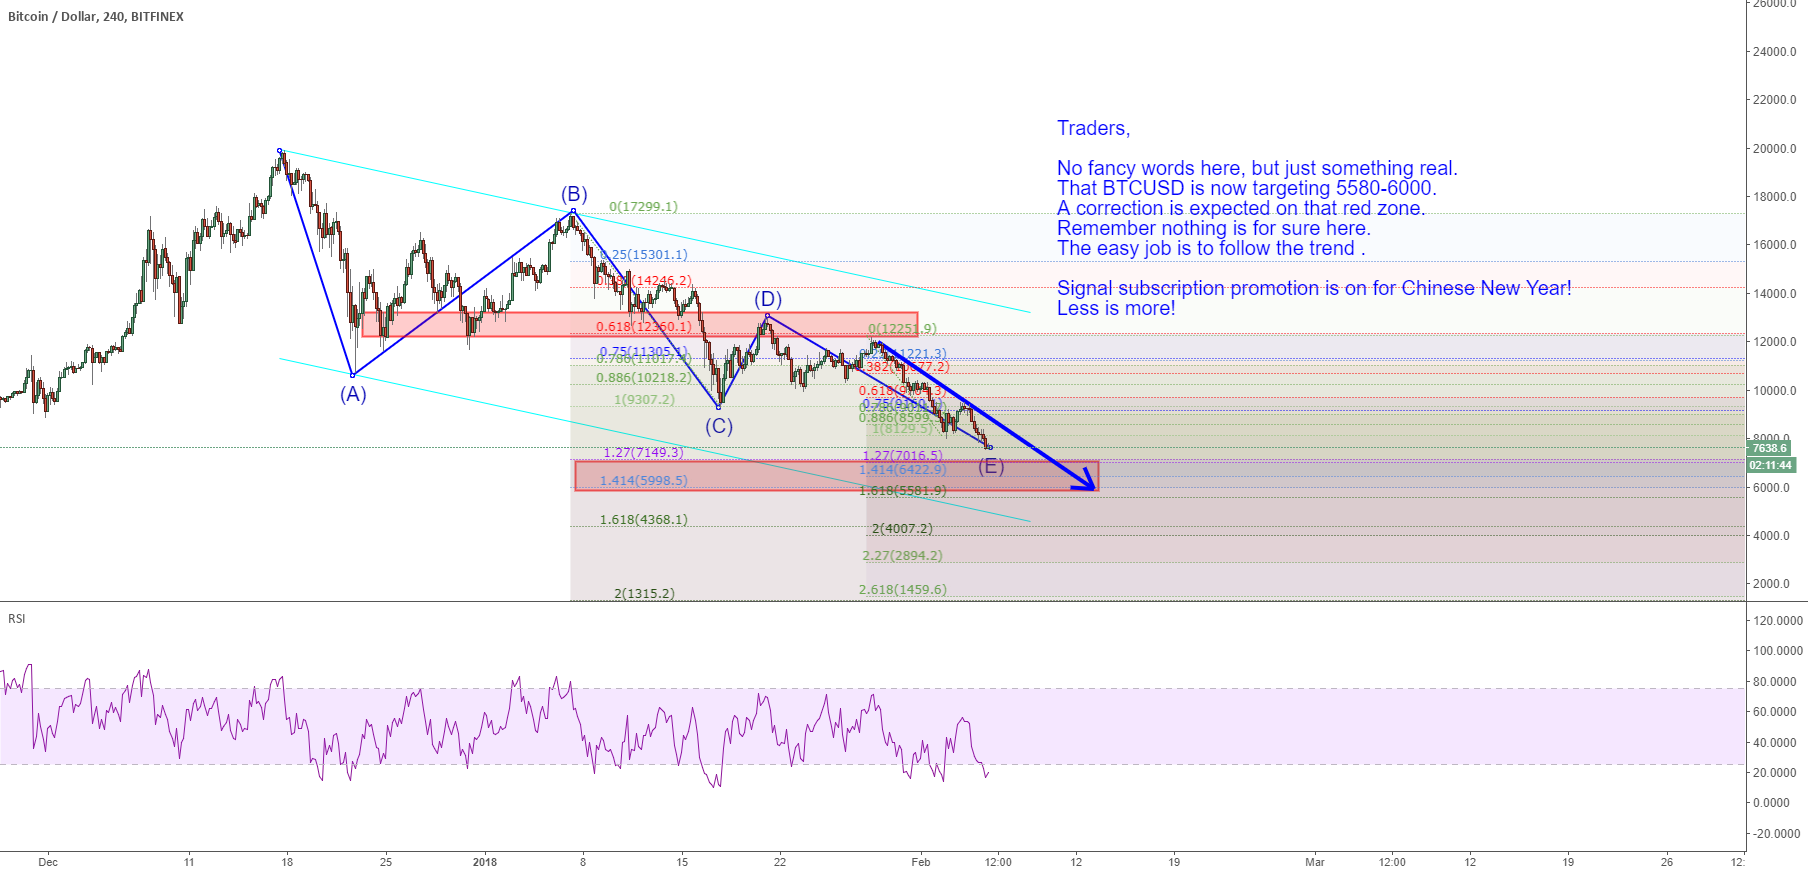 Update : BTCUSD is now targeting 5580-6000